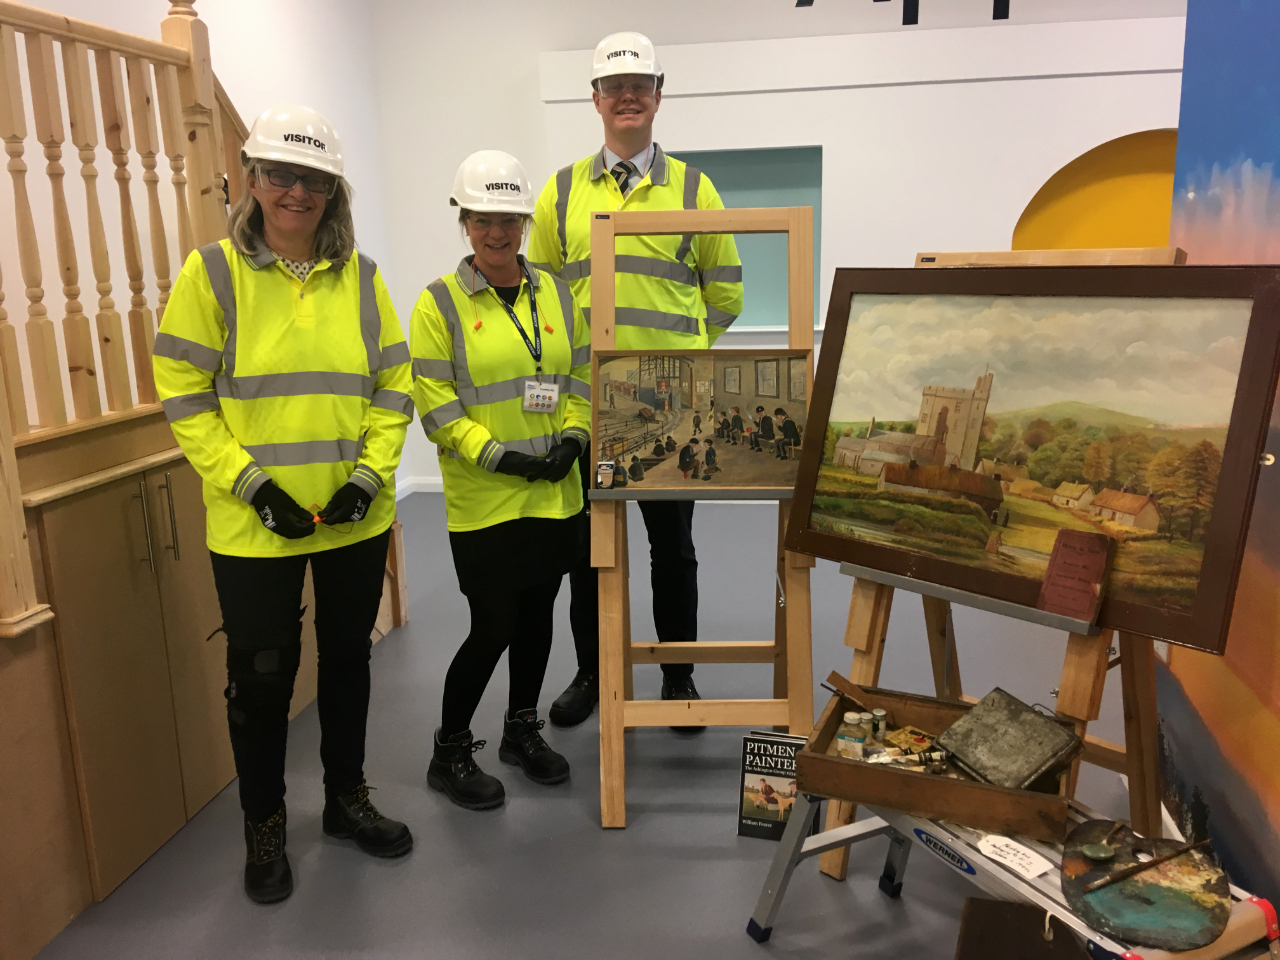 (L to R) Lieke Conijn, Nanja Piek and Martijn Verwegen from The Embassy of the Netherlands in London with the artworks by the Ashington Group, 'Pitmen Painters'.